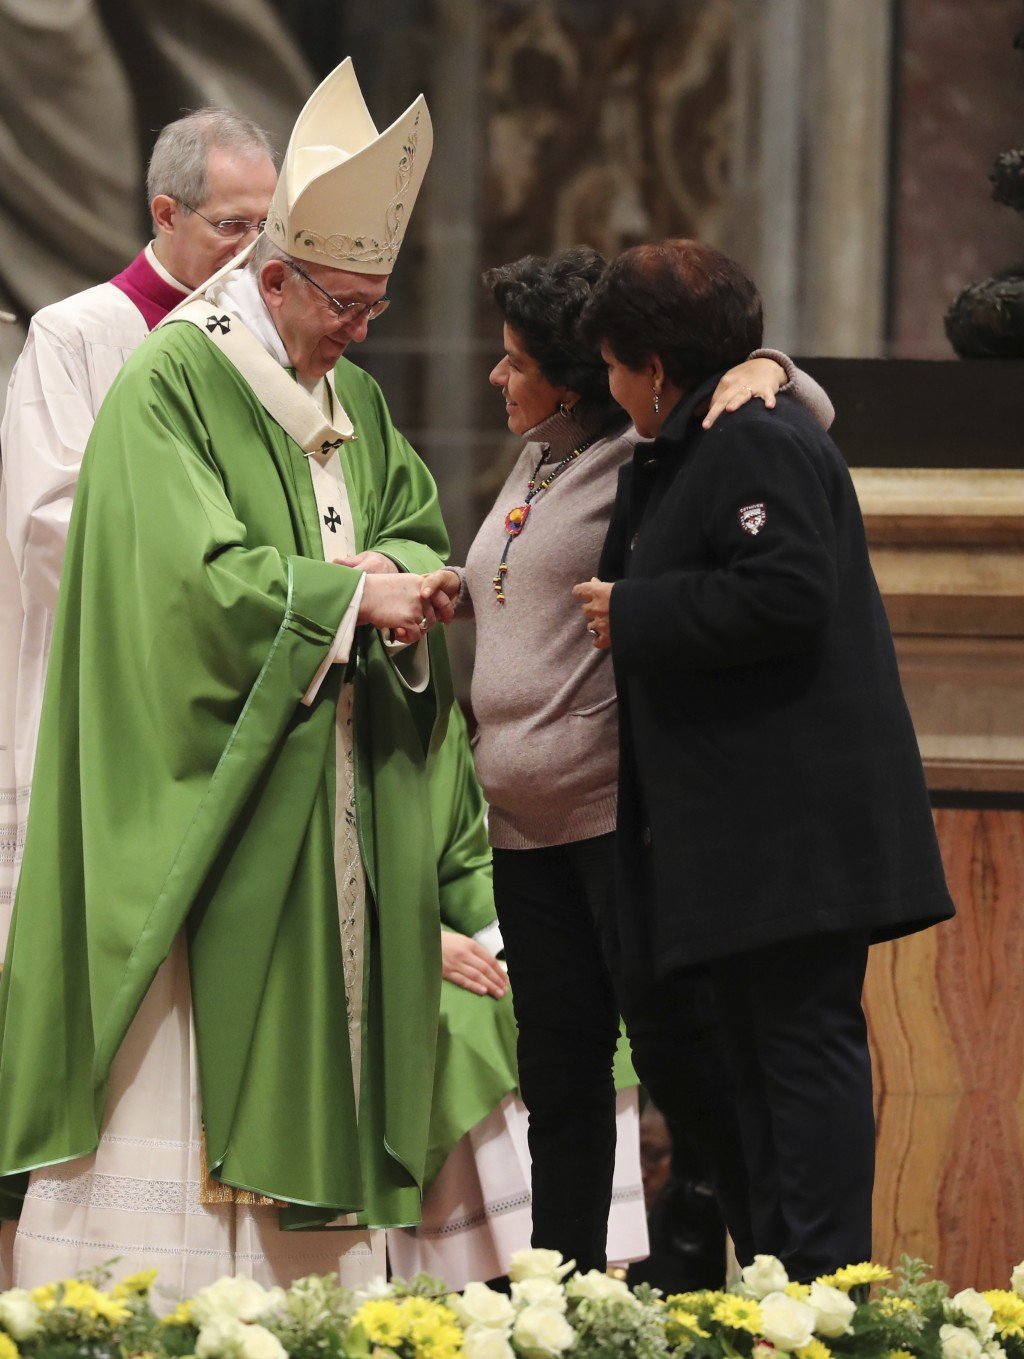 Women greets Pope Francis during the offertory on the occasion of a Mass on the world day for migrants and refugees, in St. Peter's Basilica at the Va